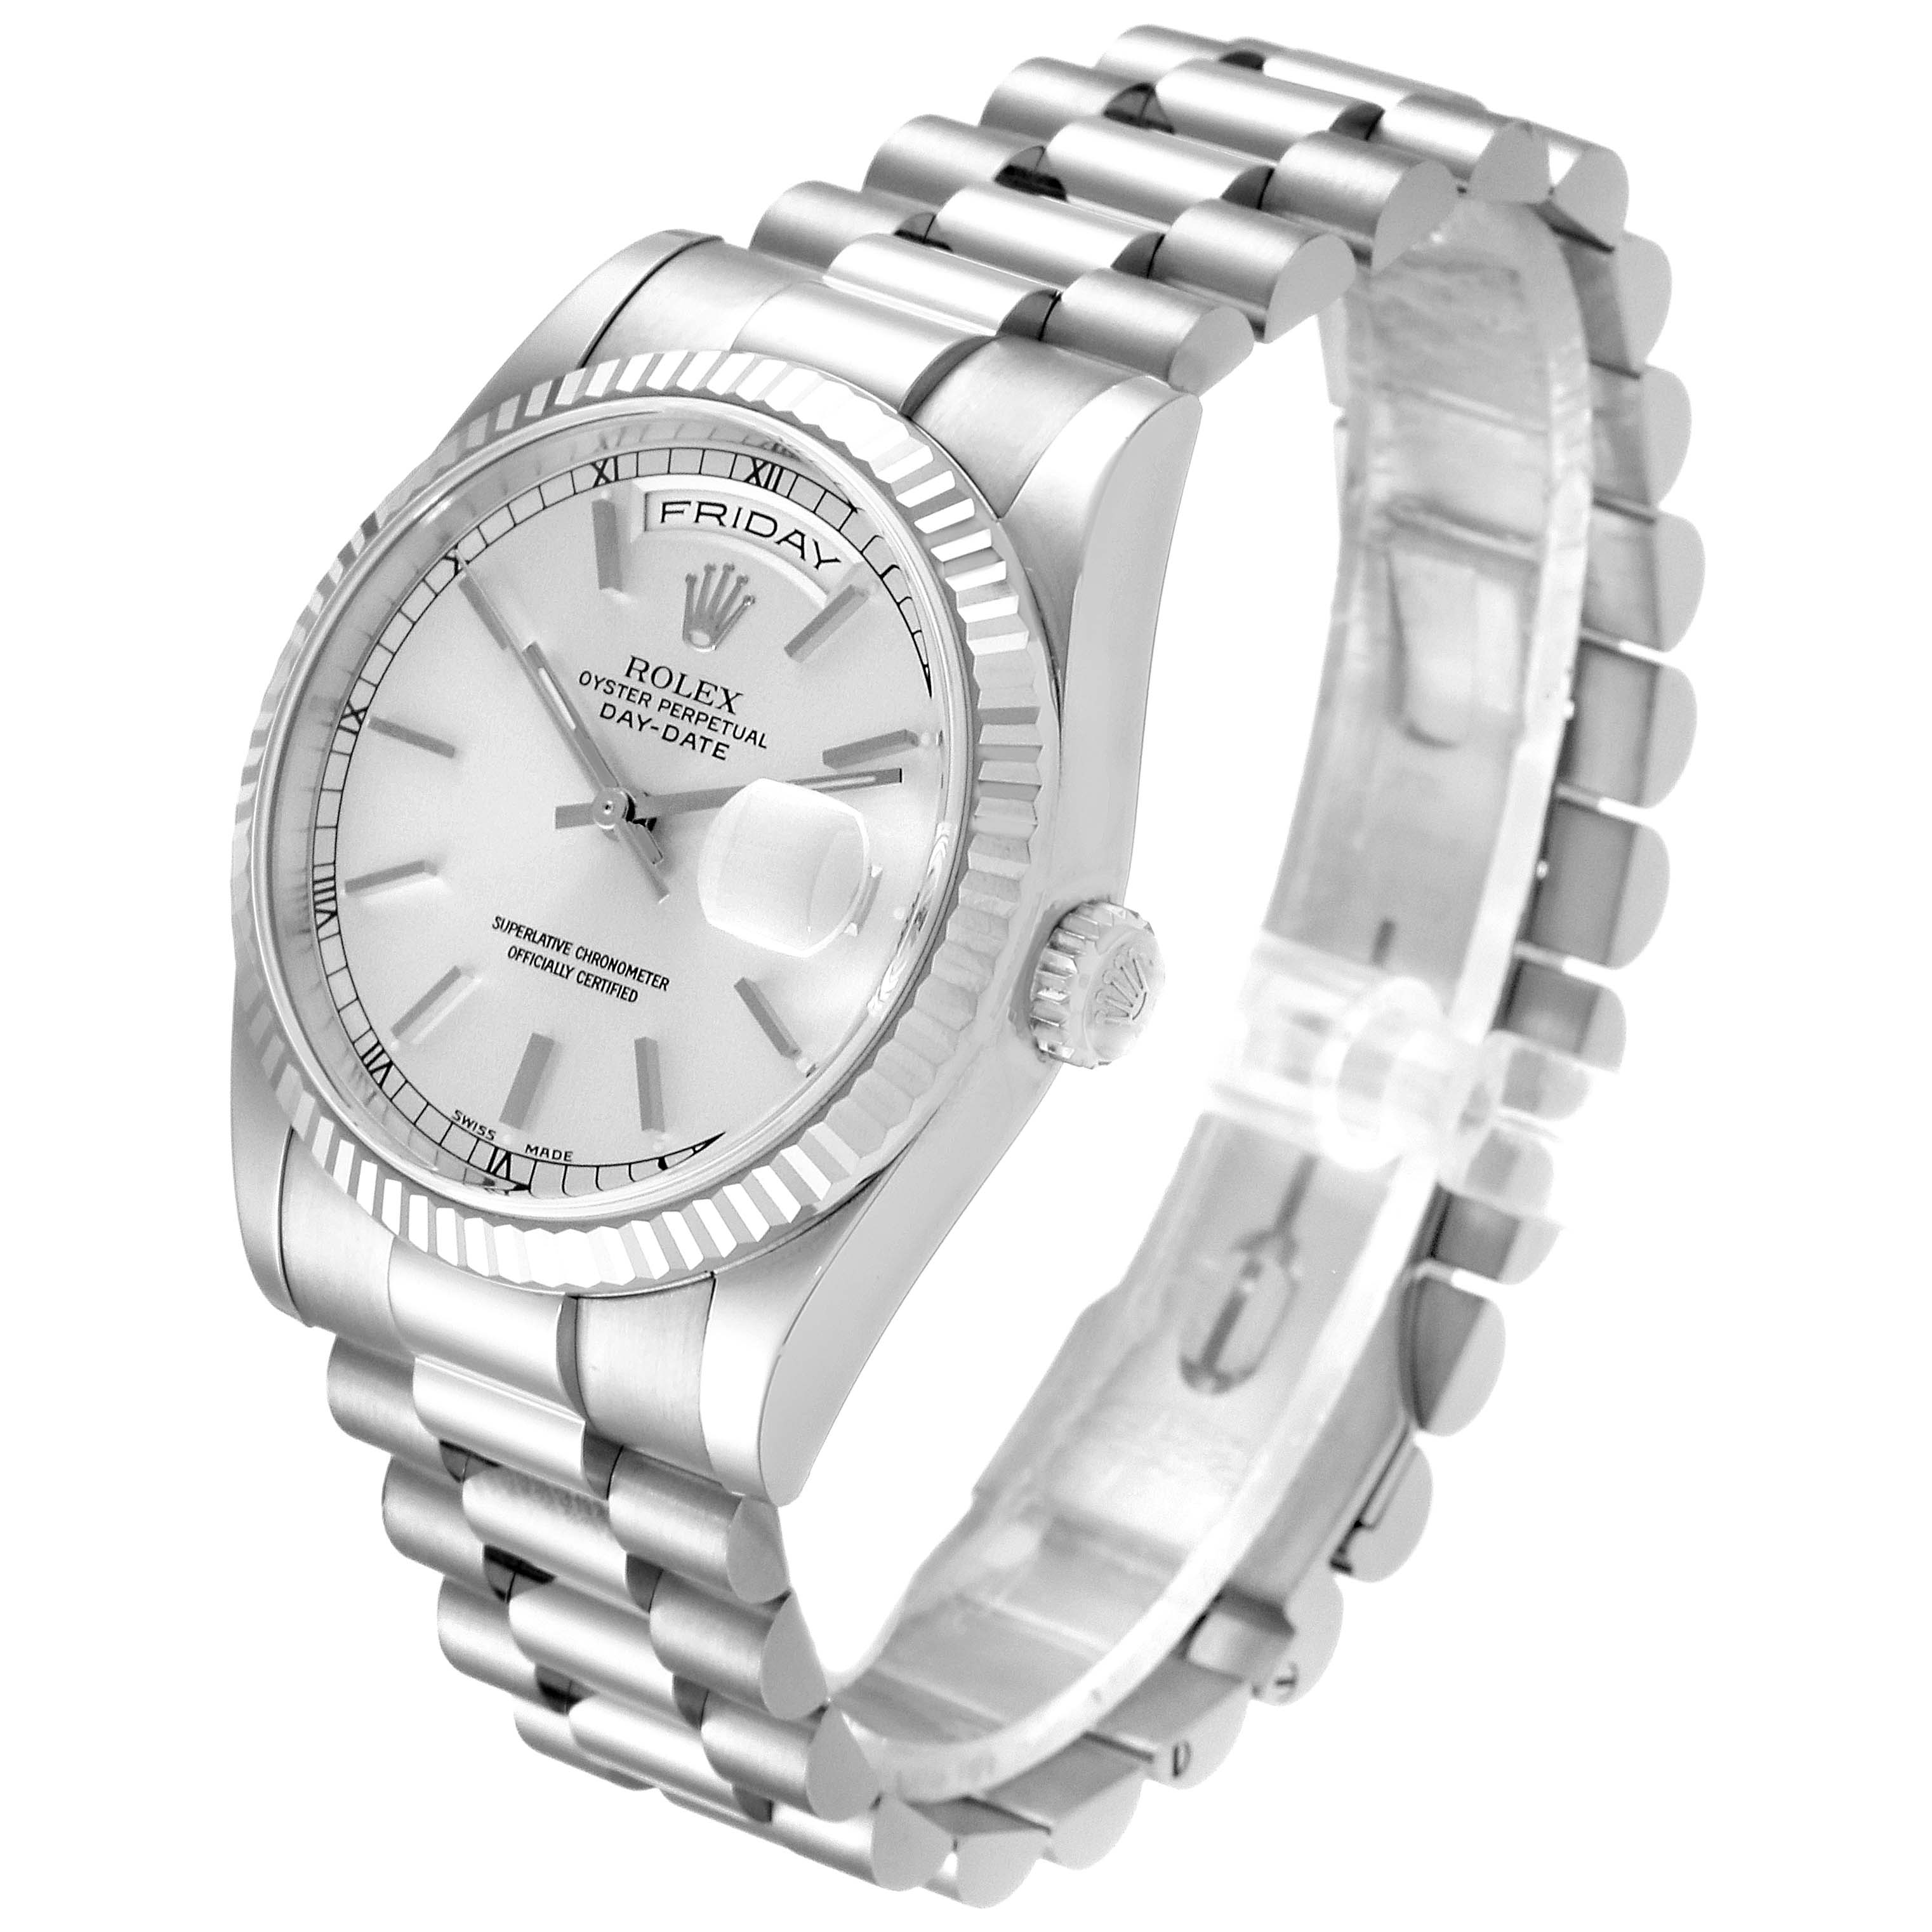 Rolex Day Date 36mm President White Gold Silver Dial Mens Watch 118239 Box SwissWatchExpo